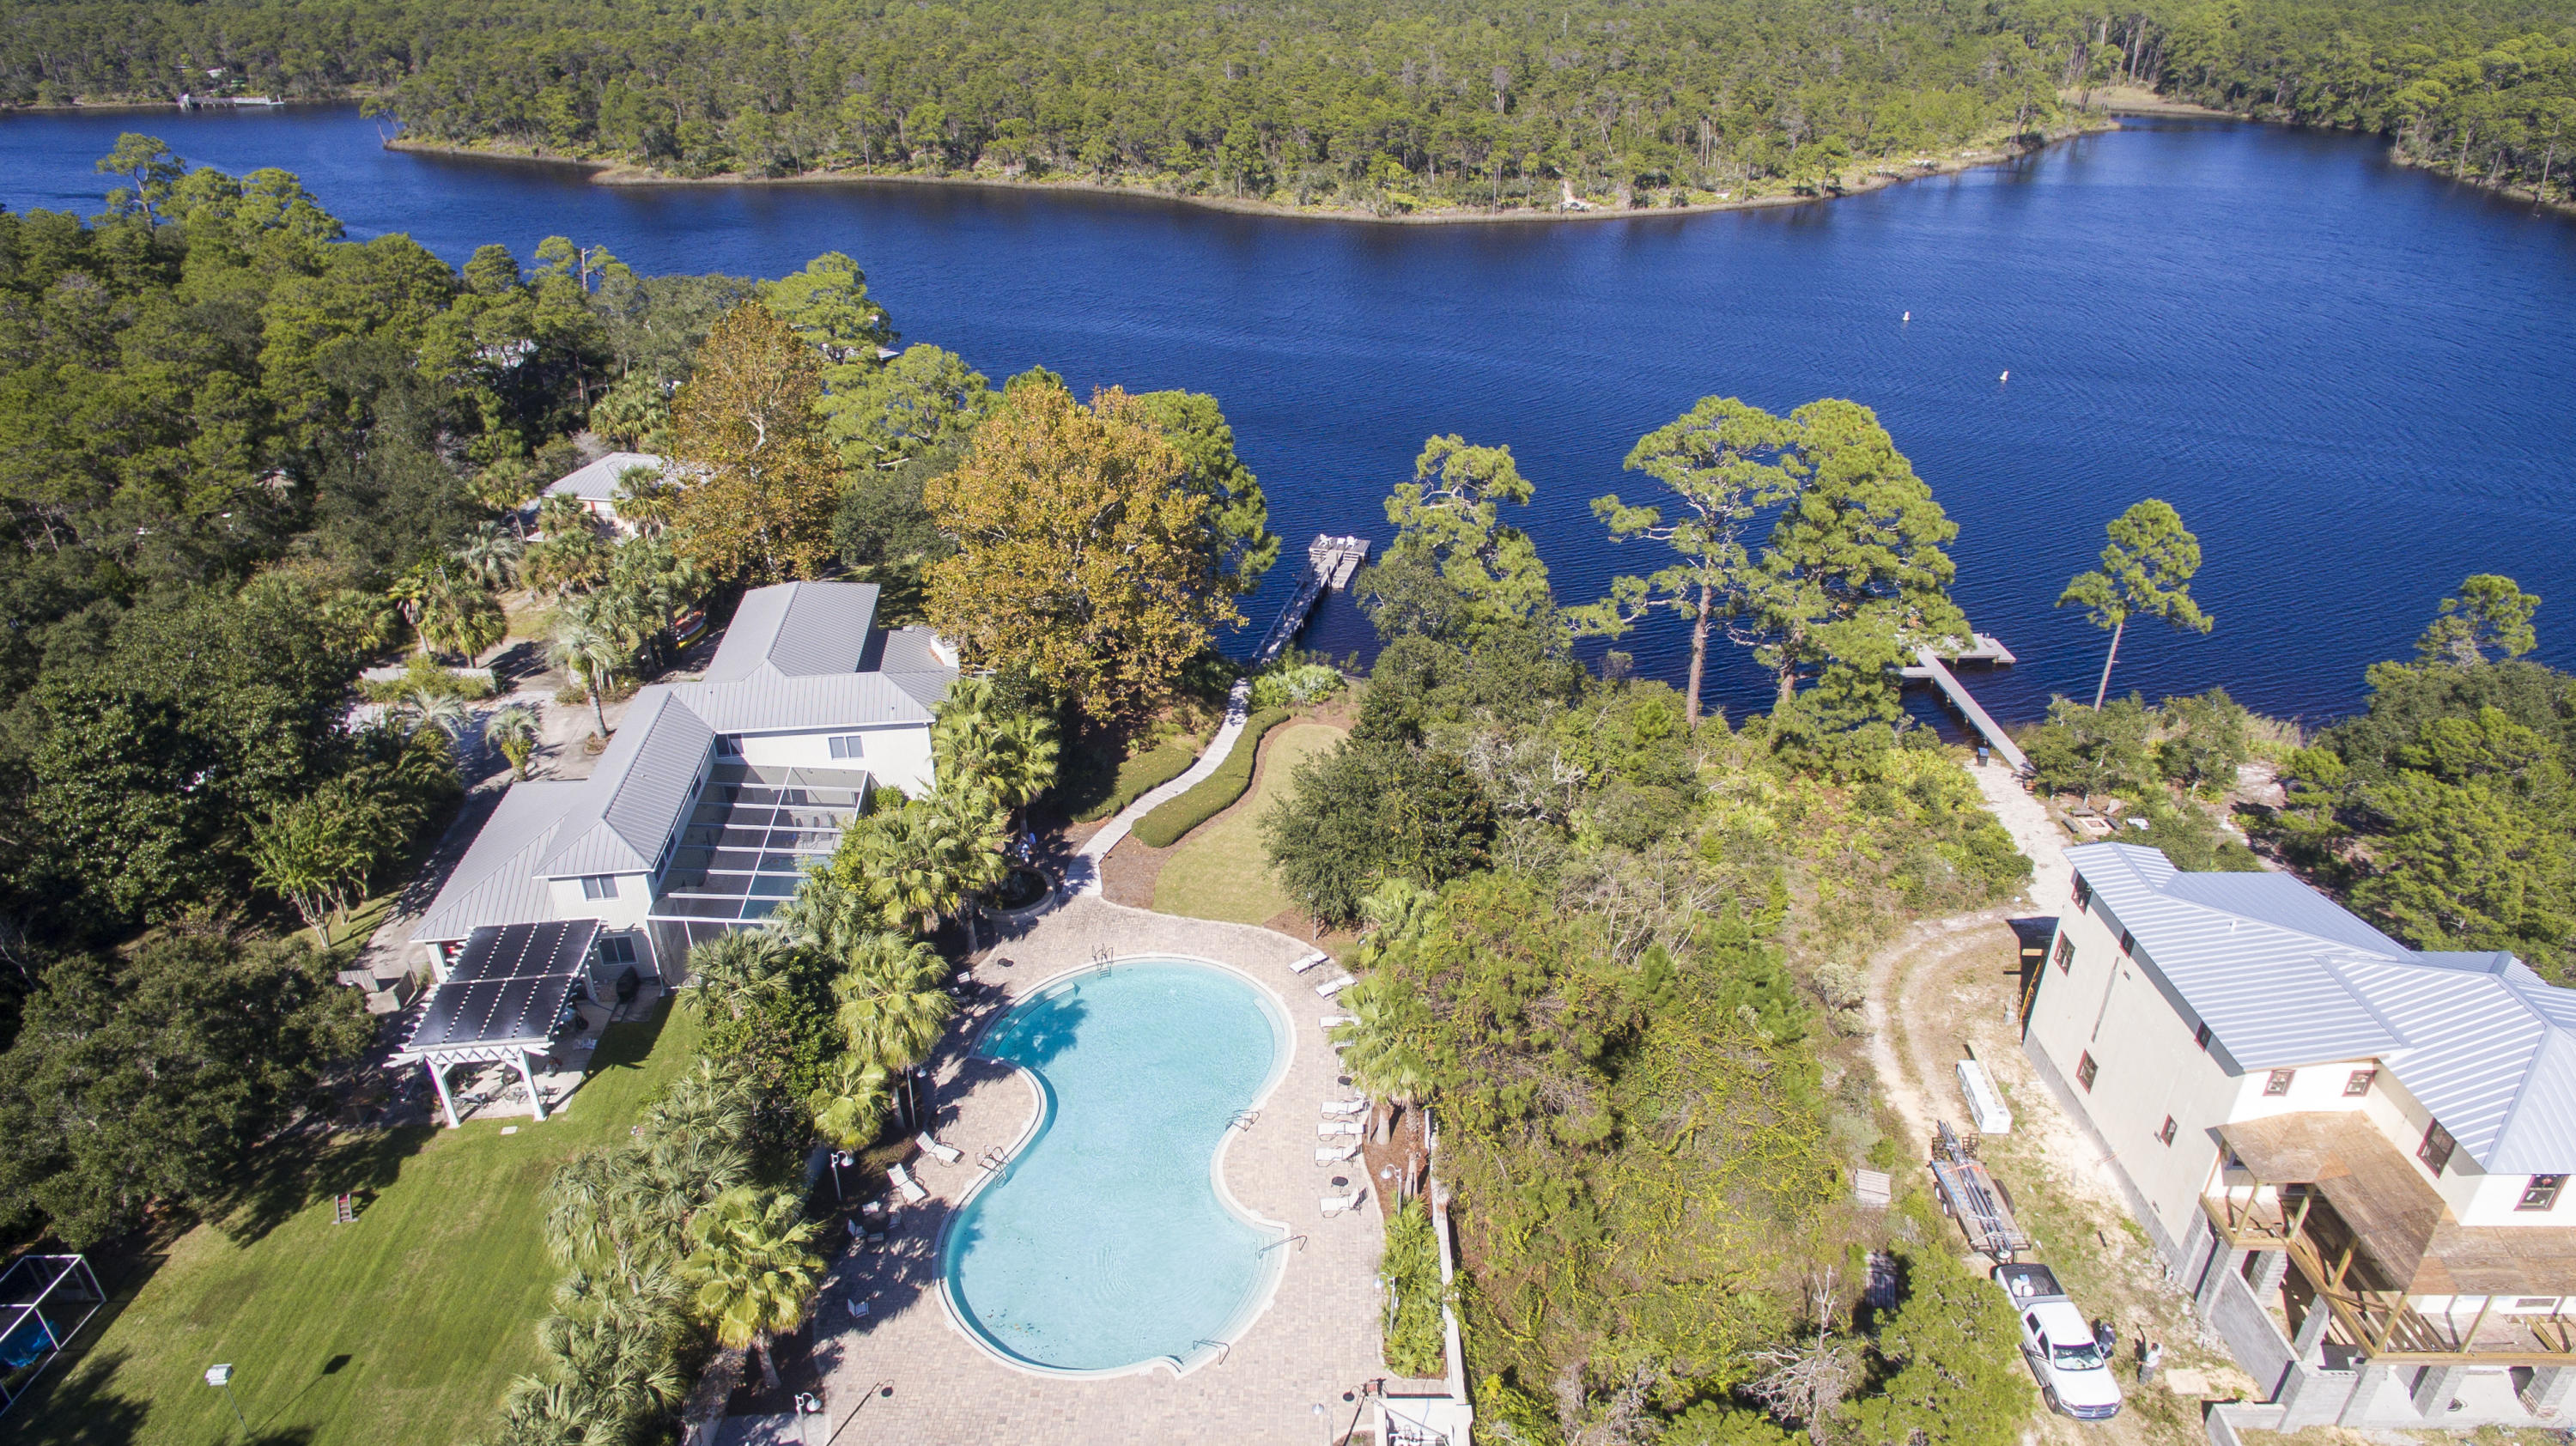 Lot 10 Grande Pointe Dr. S.,Inlet Beach,Florida 32461,Vacant land,Grande Pointe Dr. S.,20131126143817002353000000